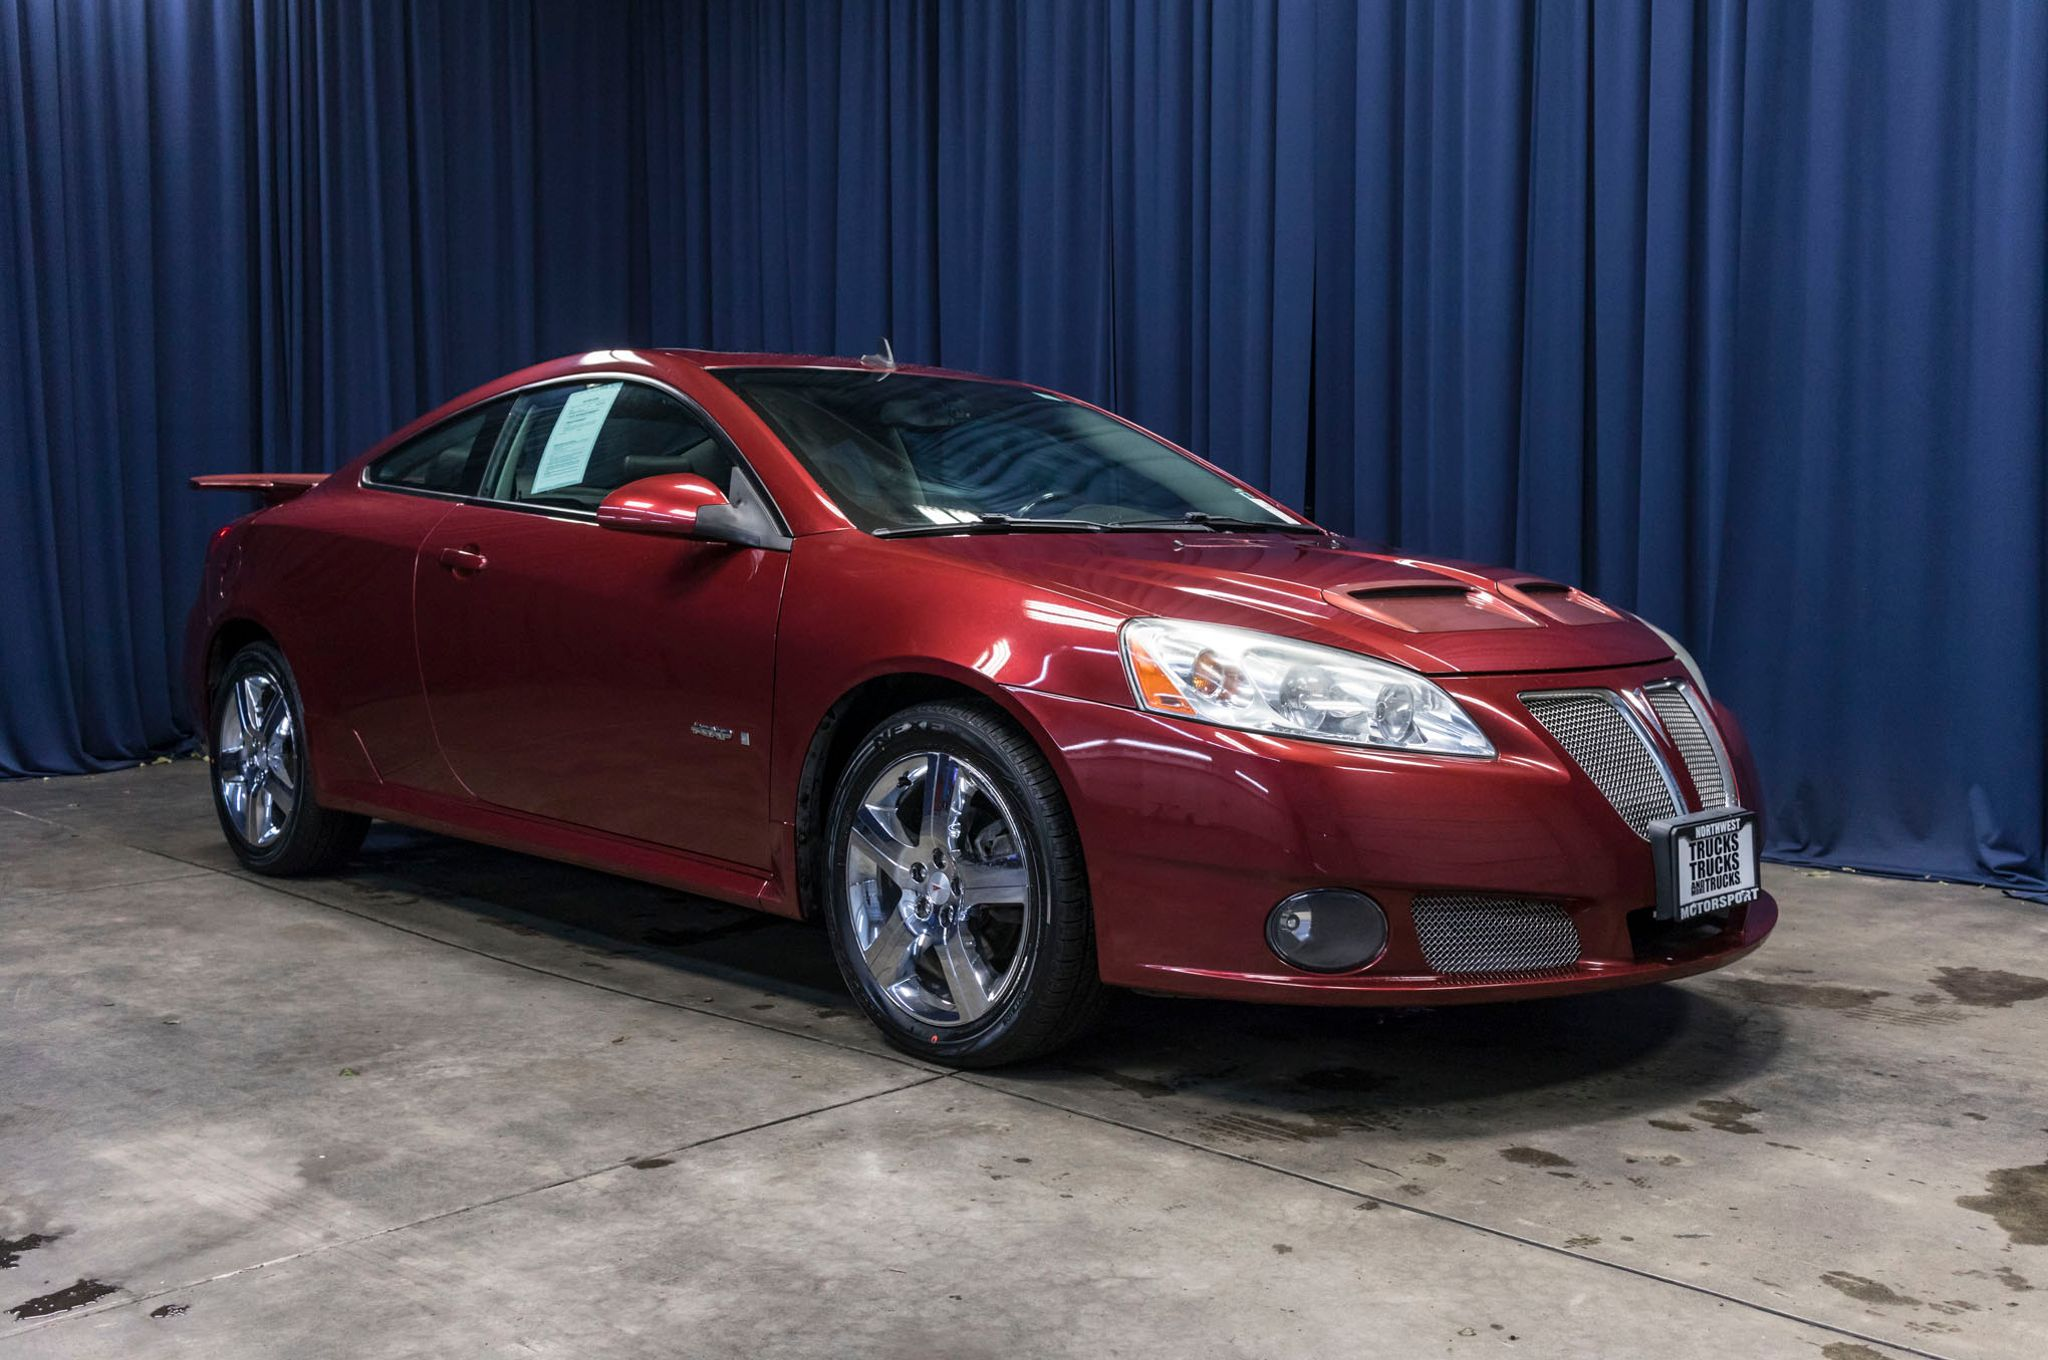 used 2008 pontiac g6 gxp fwd coupe for sale 44440a. Black Bedroom Furniture Sets. Home Design Ideas